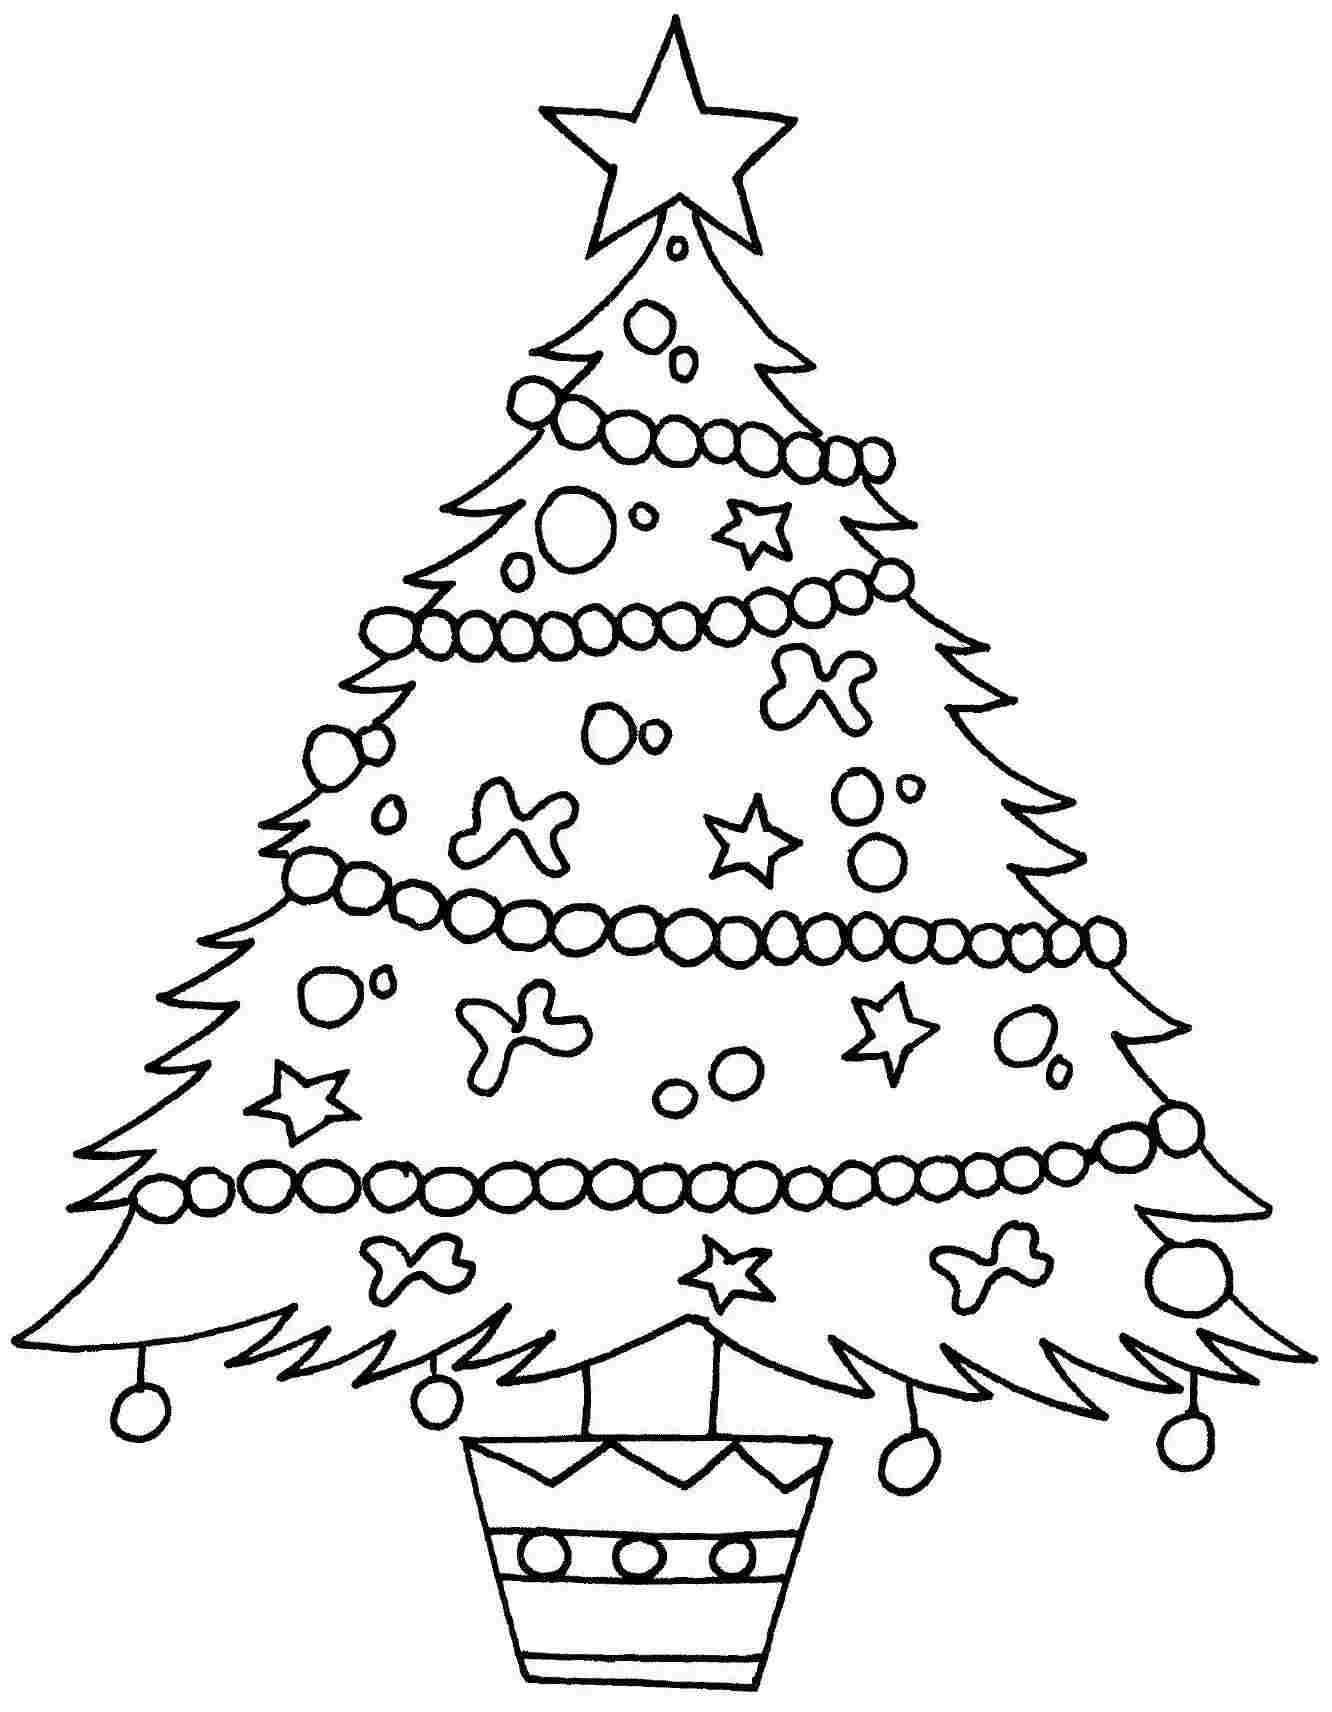 Free Christmas Tree Coloring Pages - Futpal.com